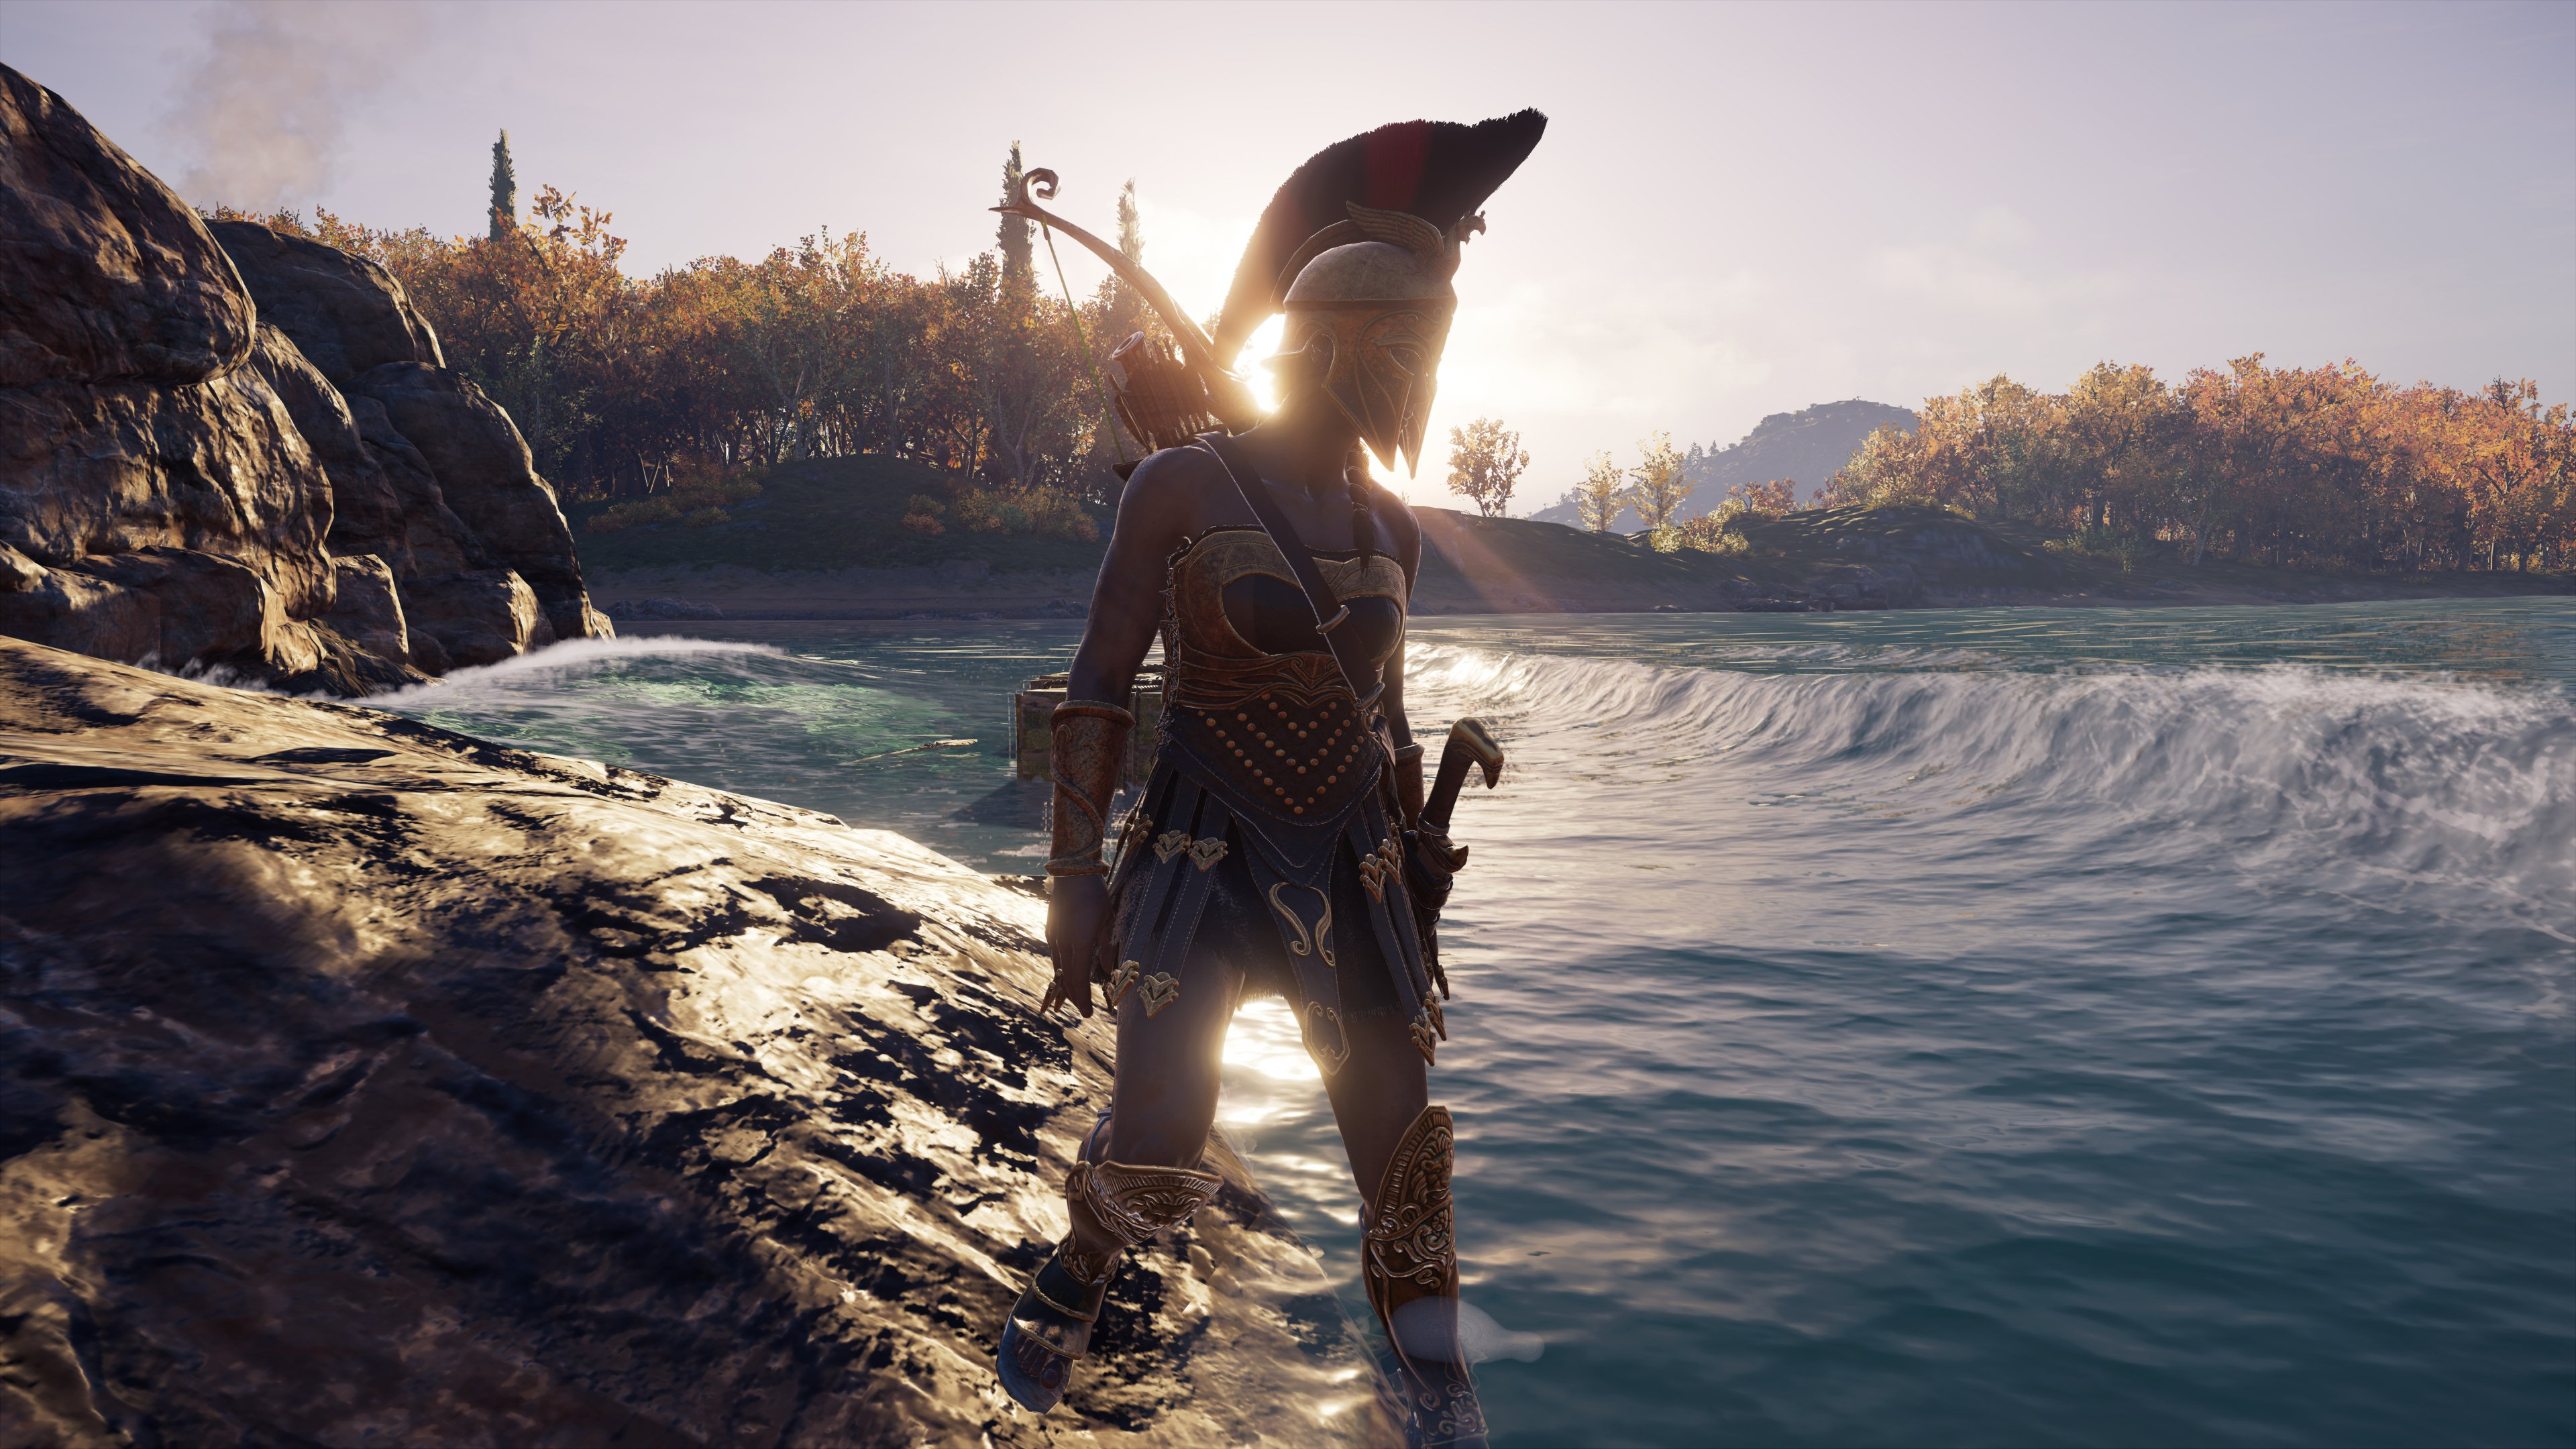 2018118150534.jpg - Assassin's Creed: Odyssey